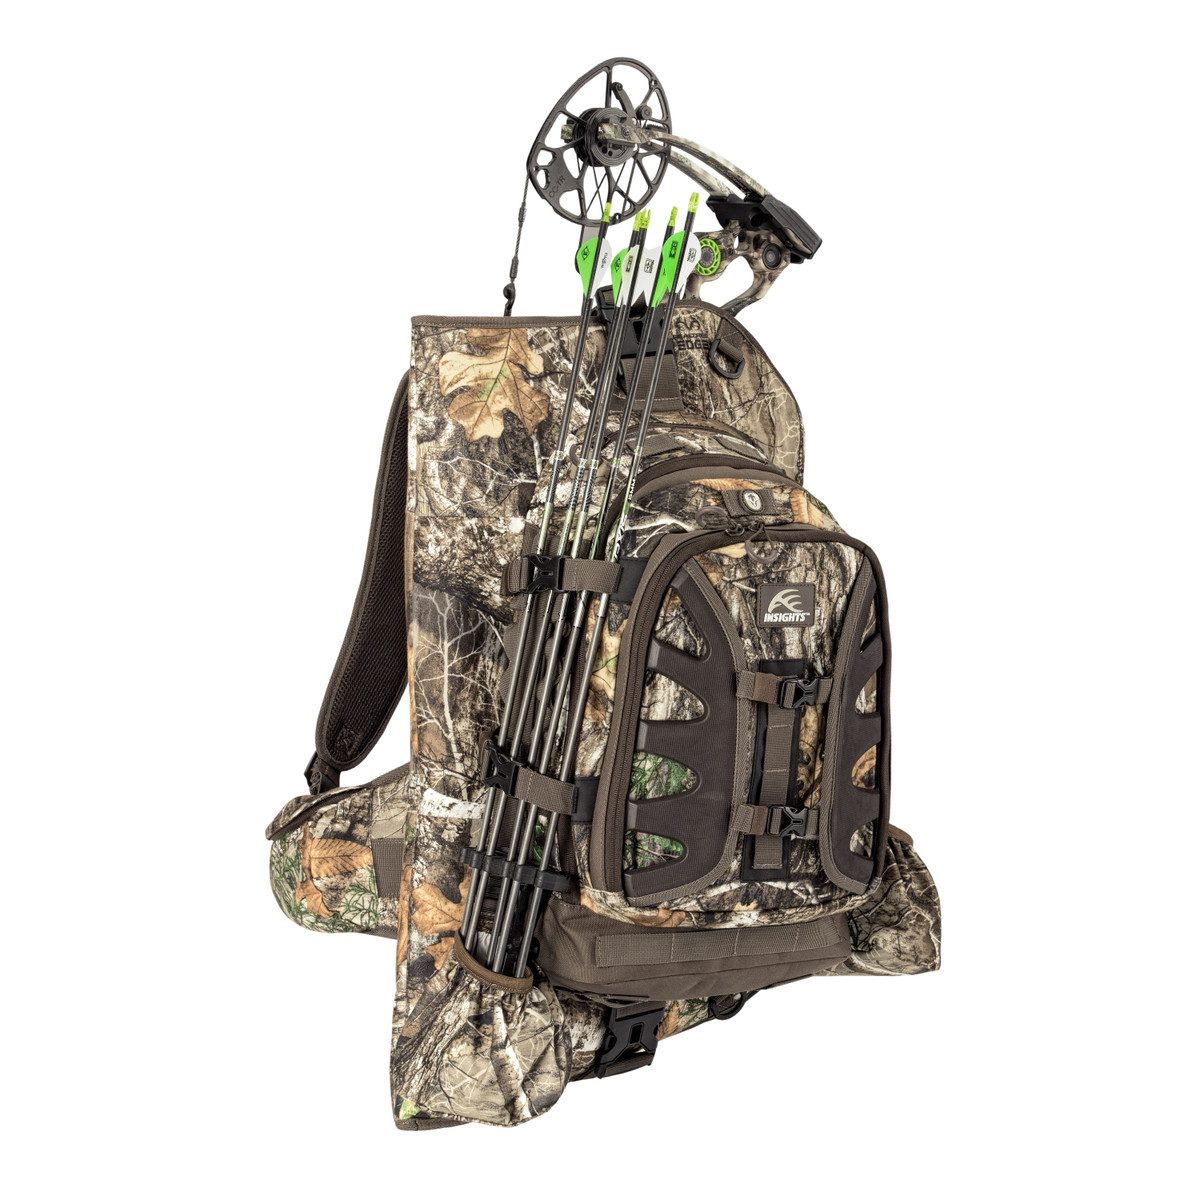 Vision Bow Pack in Realtree EDGE